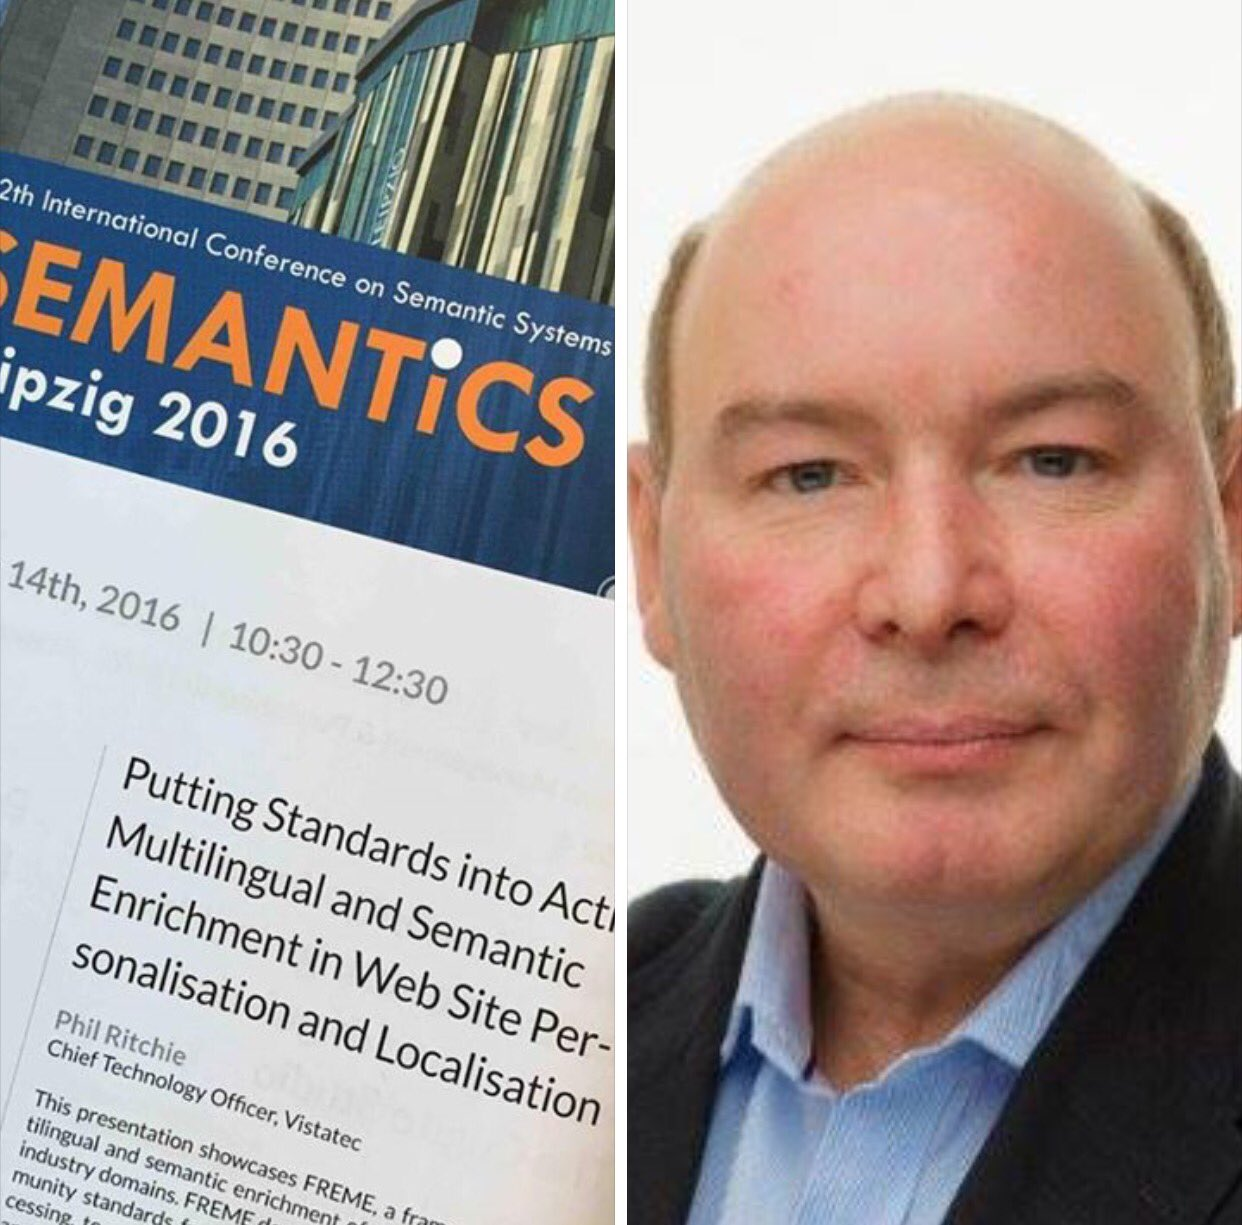 Vistatec CTO presenting at SEMANTiCS 2016 conference #semanticsconf #ThinkGlobal @philinthecloud https://t.co/rypZzPRq5C